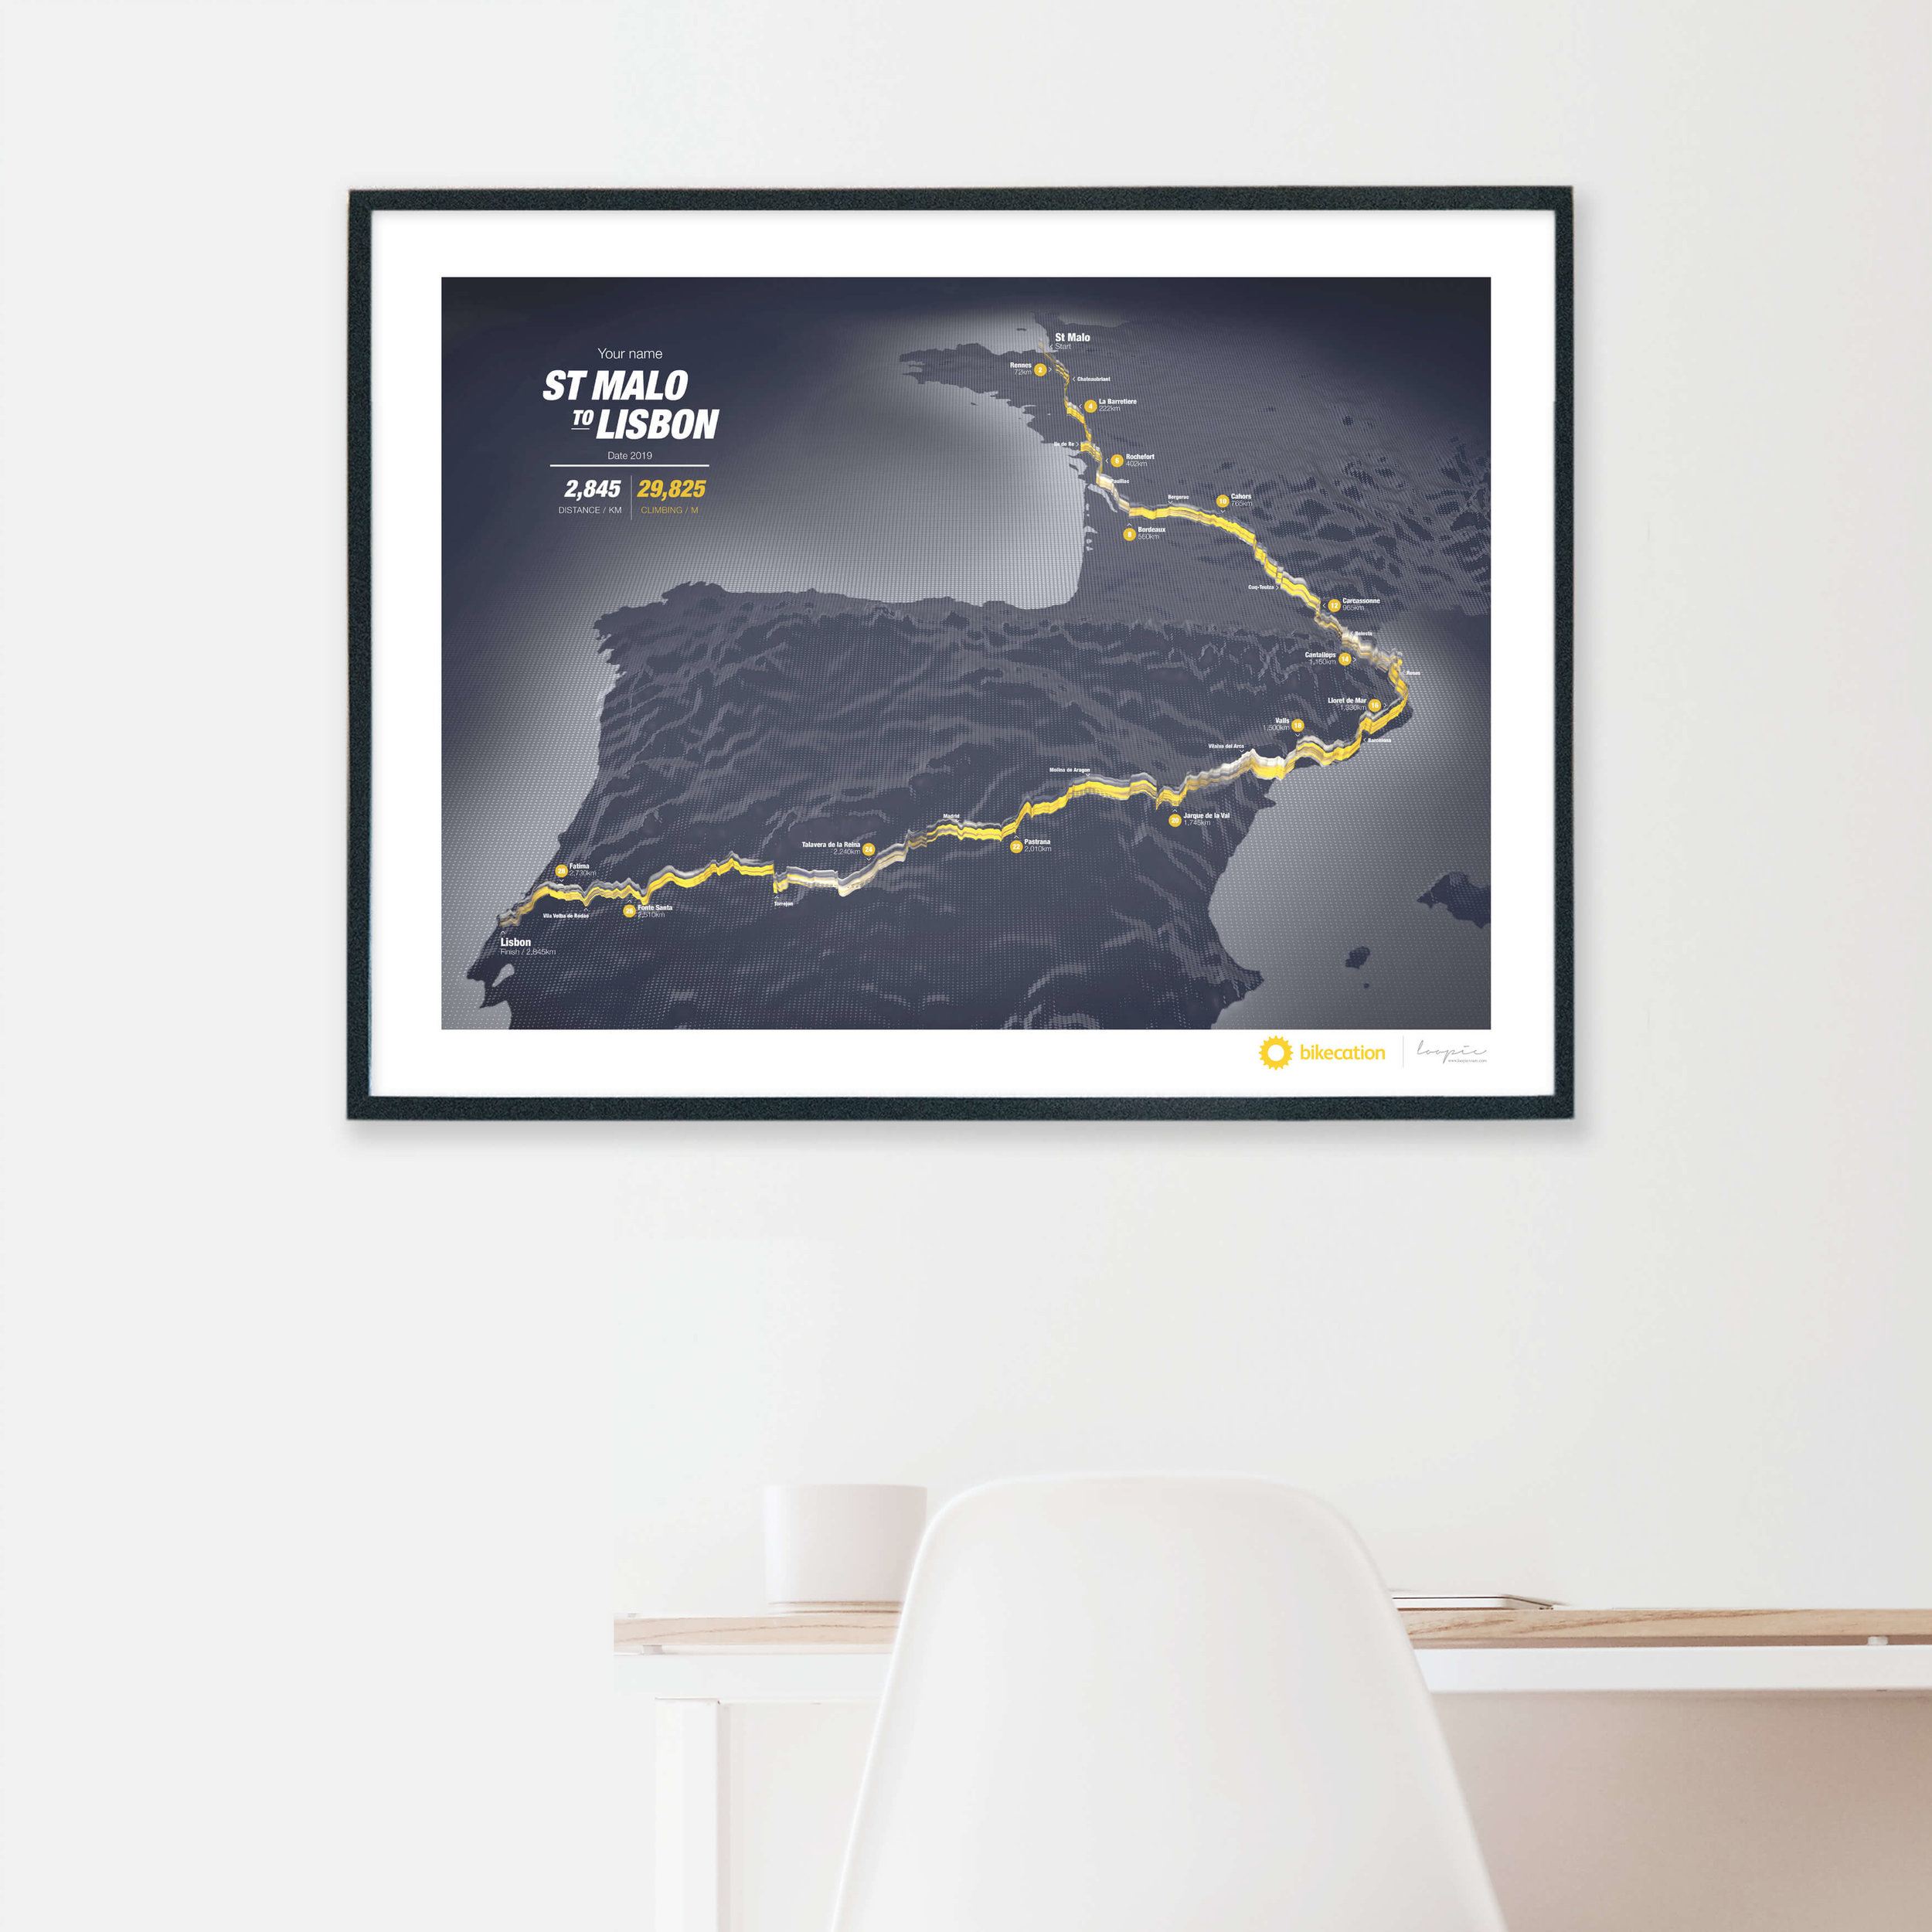 St Malo to Lisbon - Personalised GPS prints of your Bikecation adventure